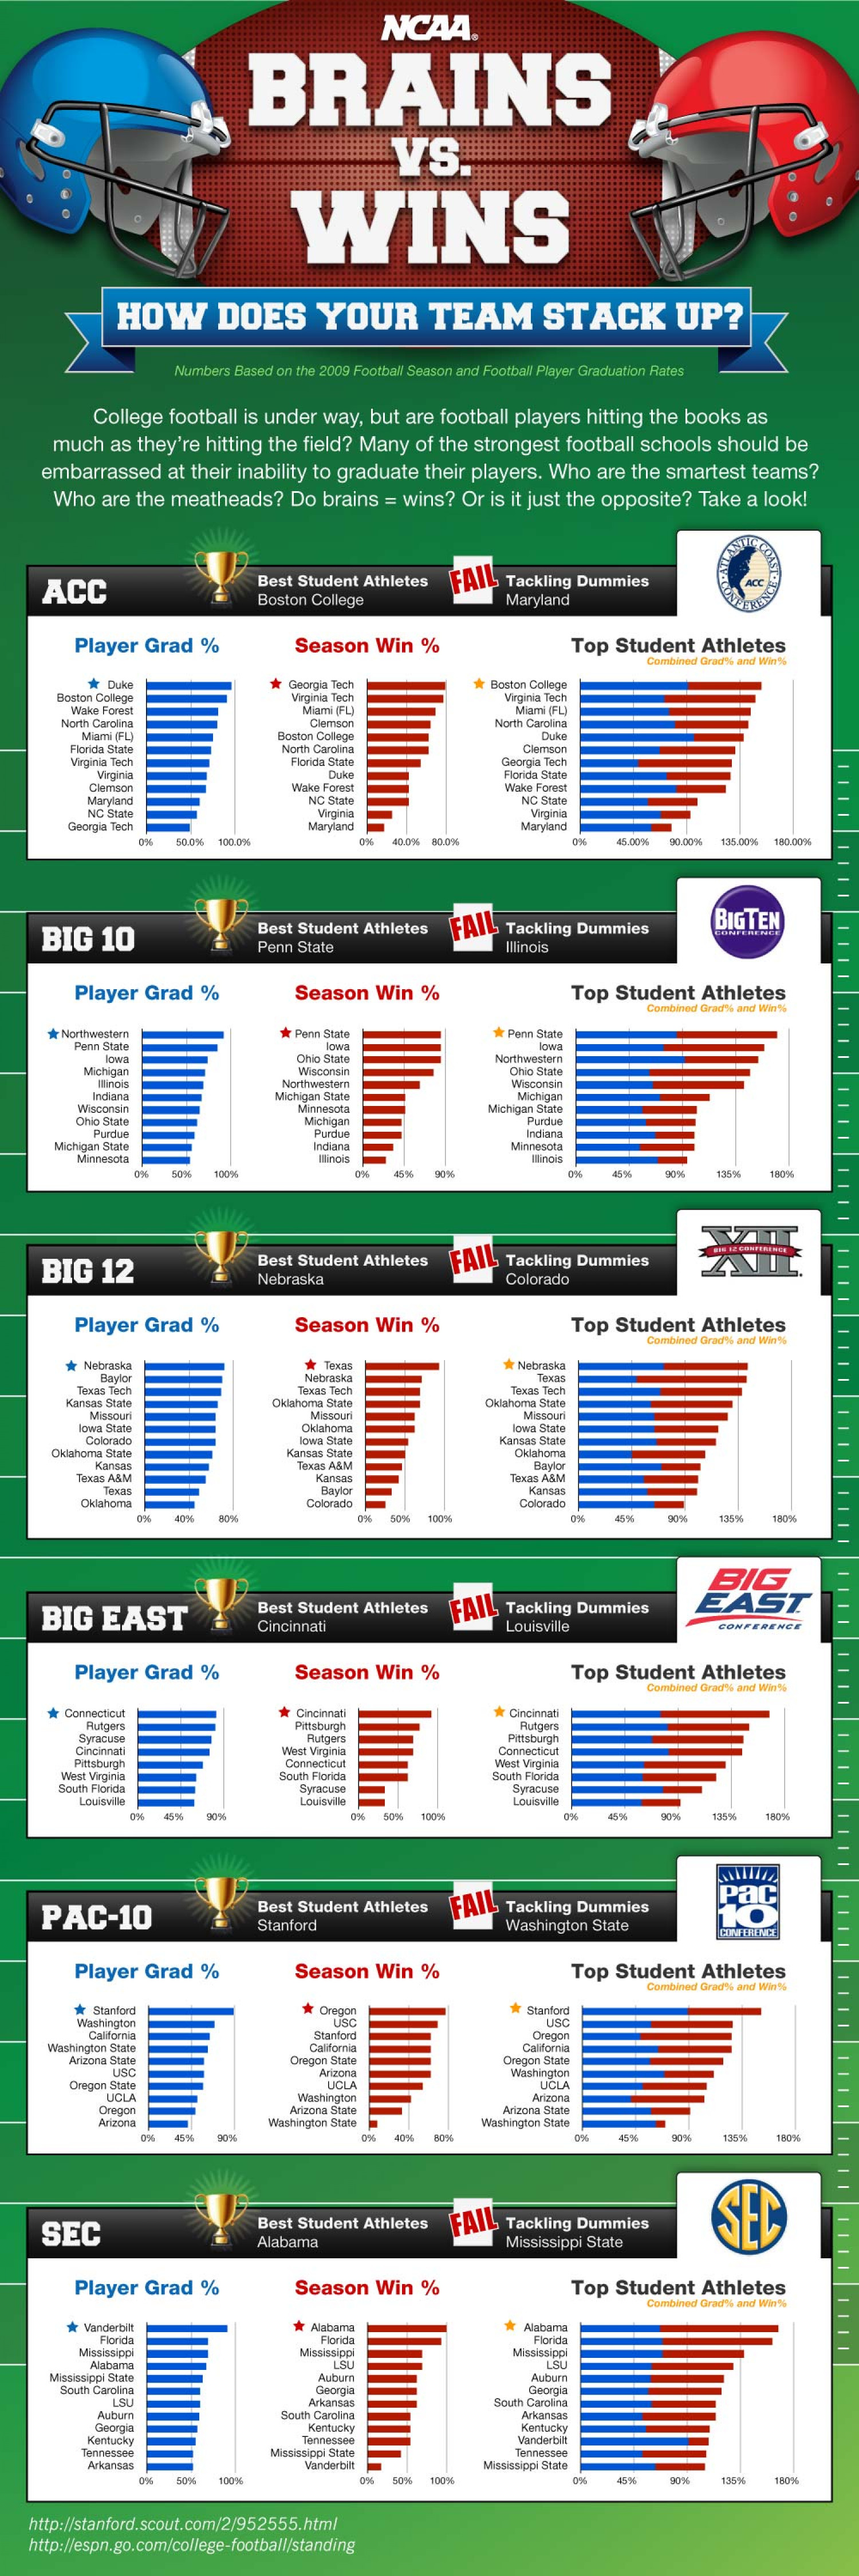 BRAINS vs. WINS in College Football  Infographic